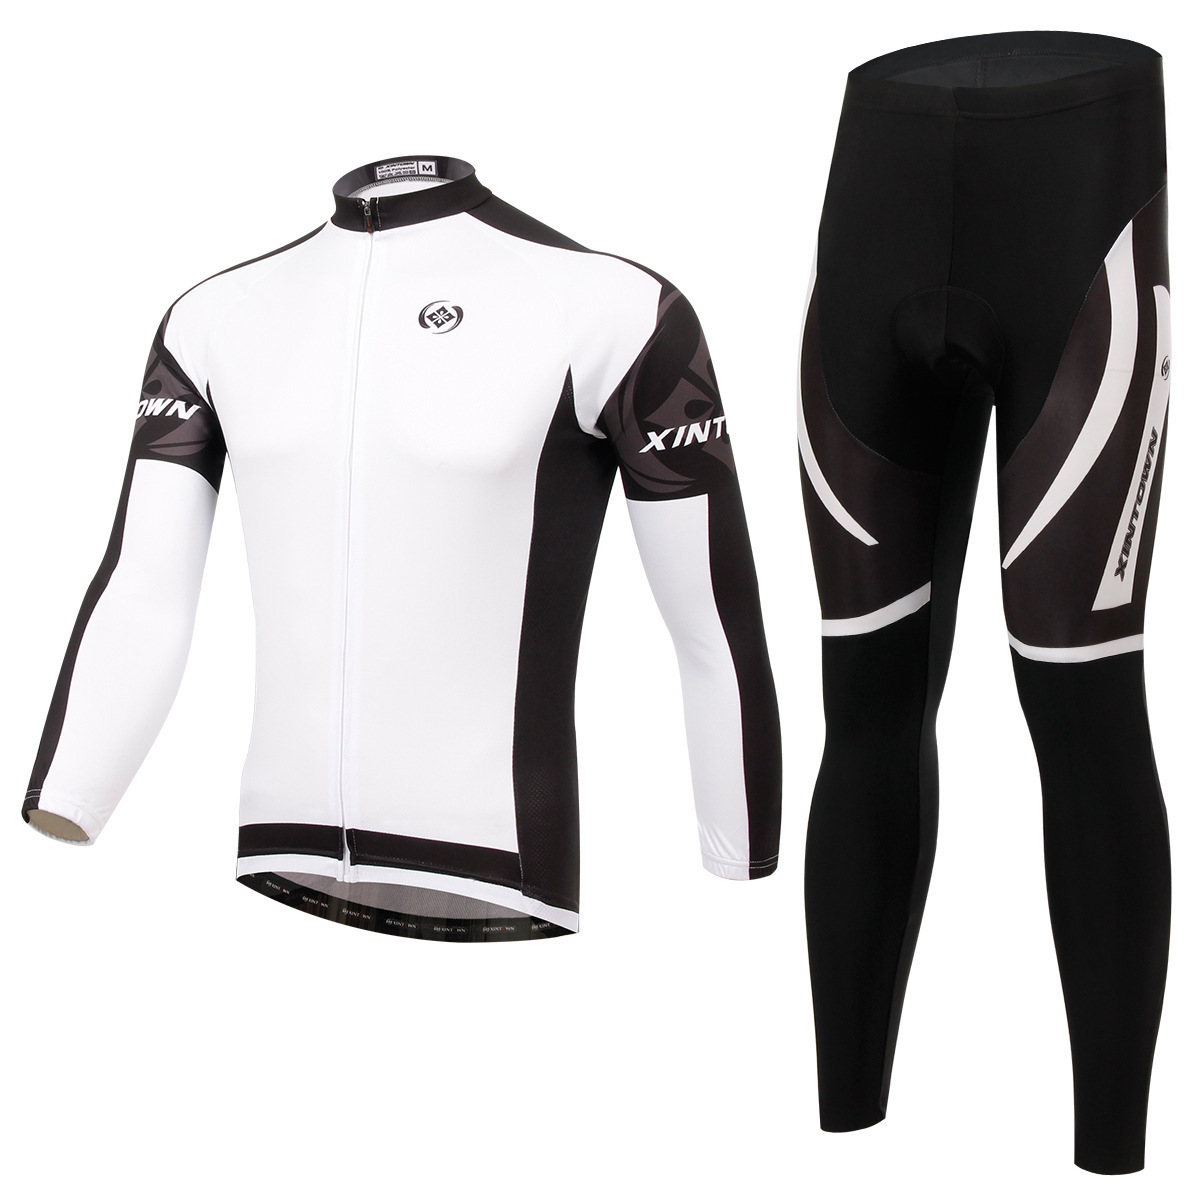 XINTOWN Long Sleeve Cycling Sets 2018 MTB Jersey Bike Wear Clothes Ropa Ciclismo Spring Autumn Long Sleeves Cycling Clothing Men wosawe men s long sleeve cycling jersey sets breathable gel padded mtb tights sportswear for all season cycling clothings